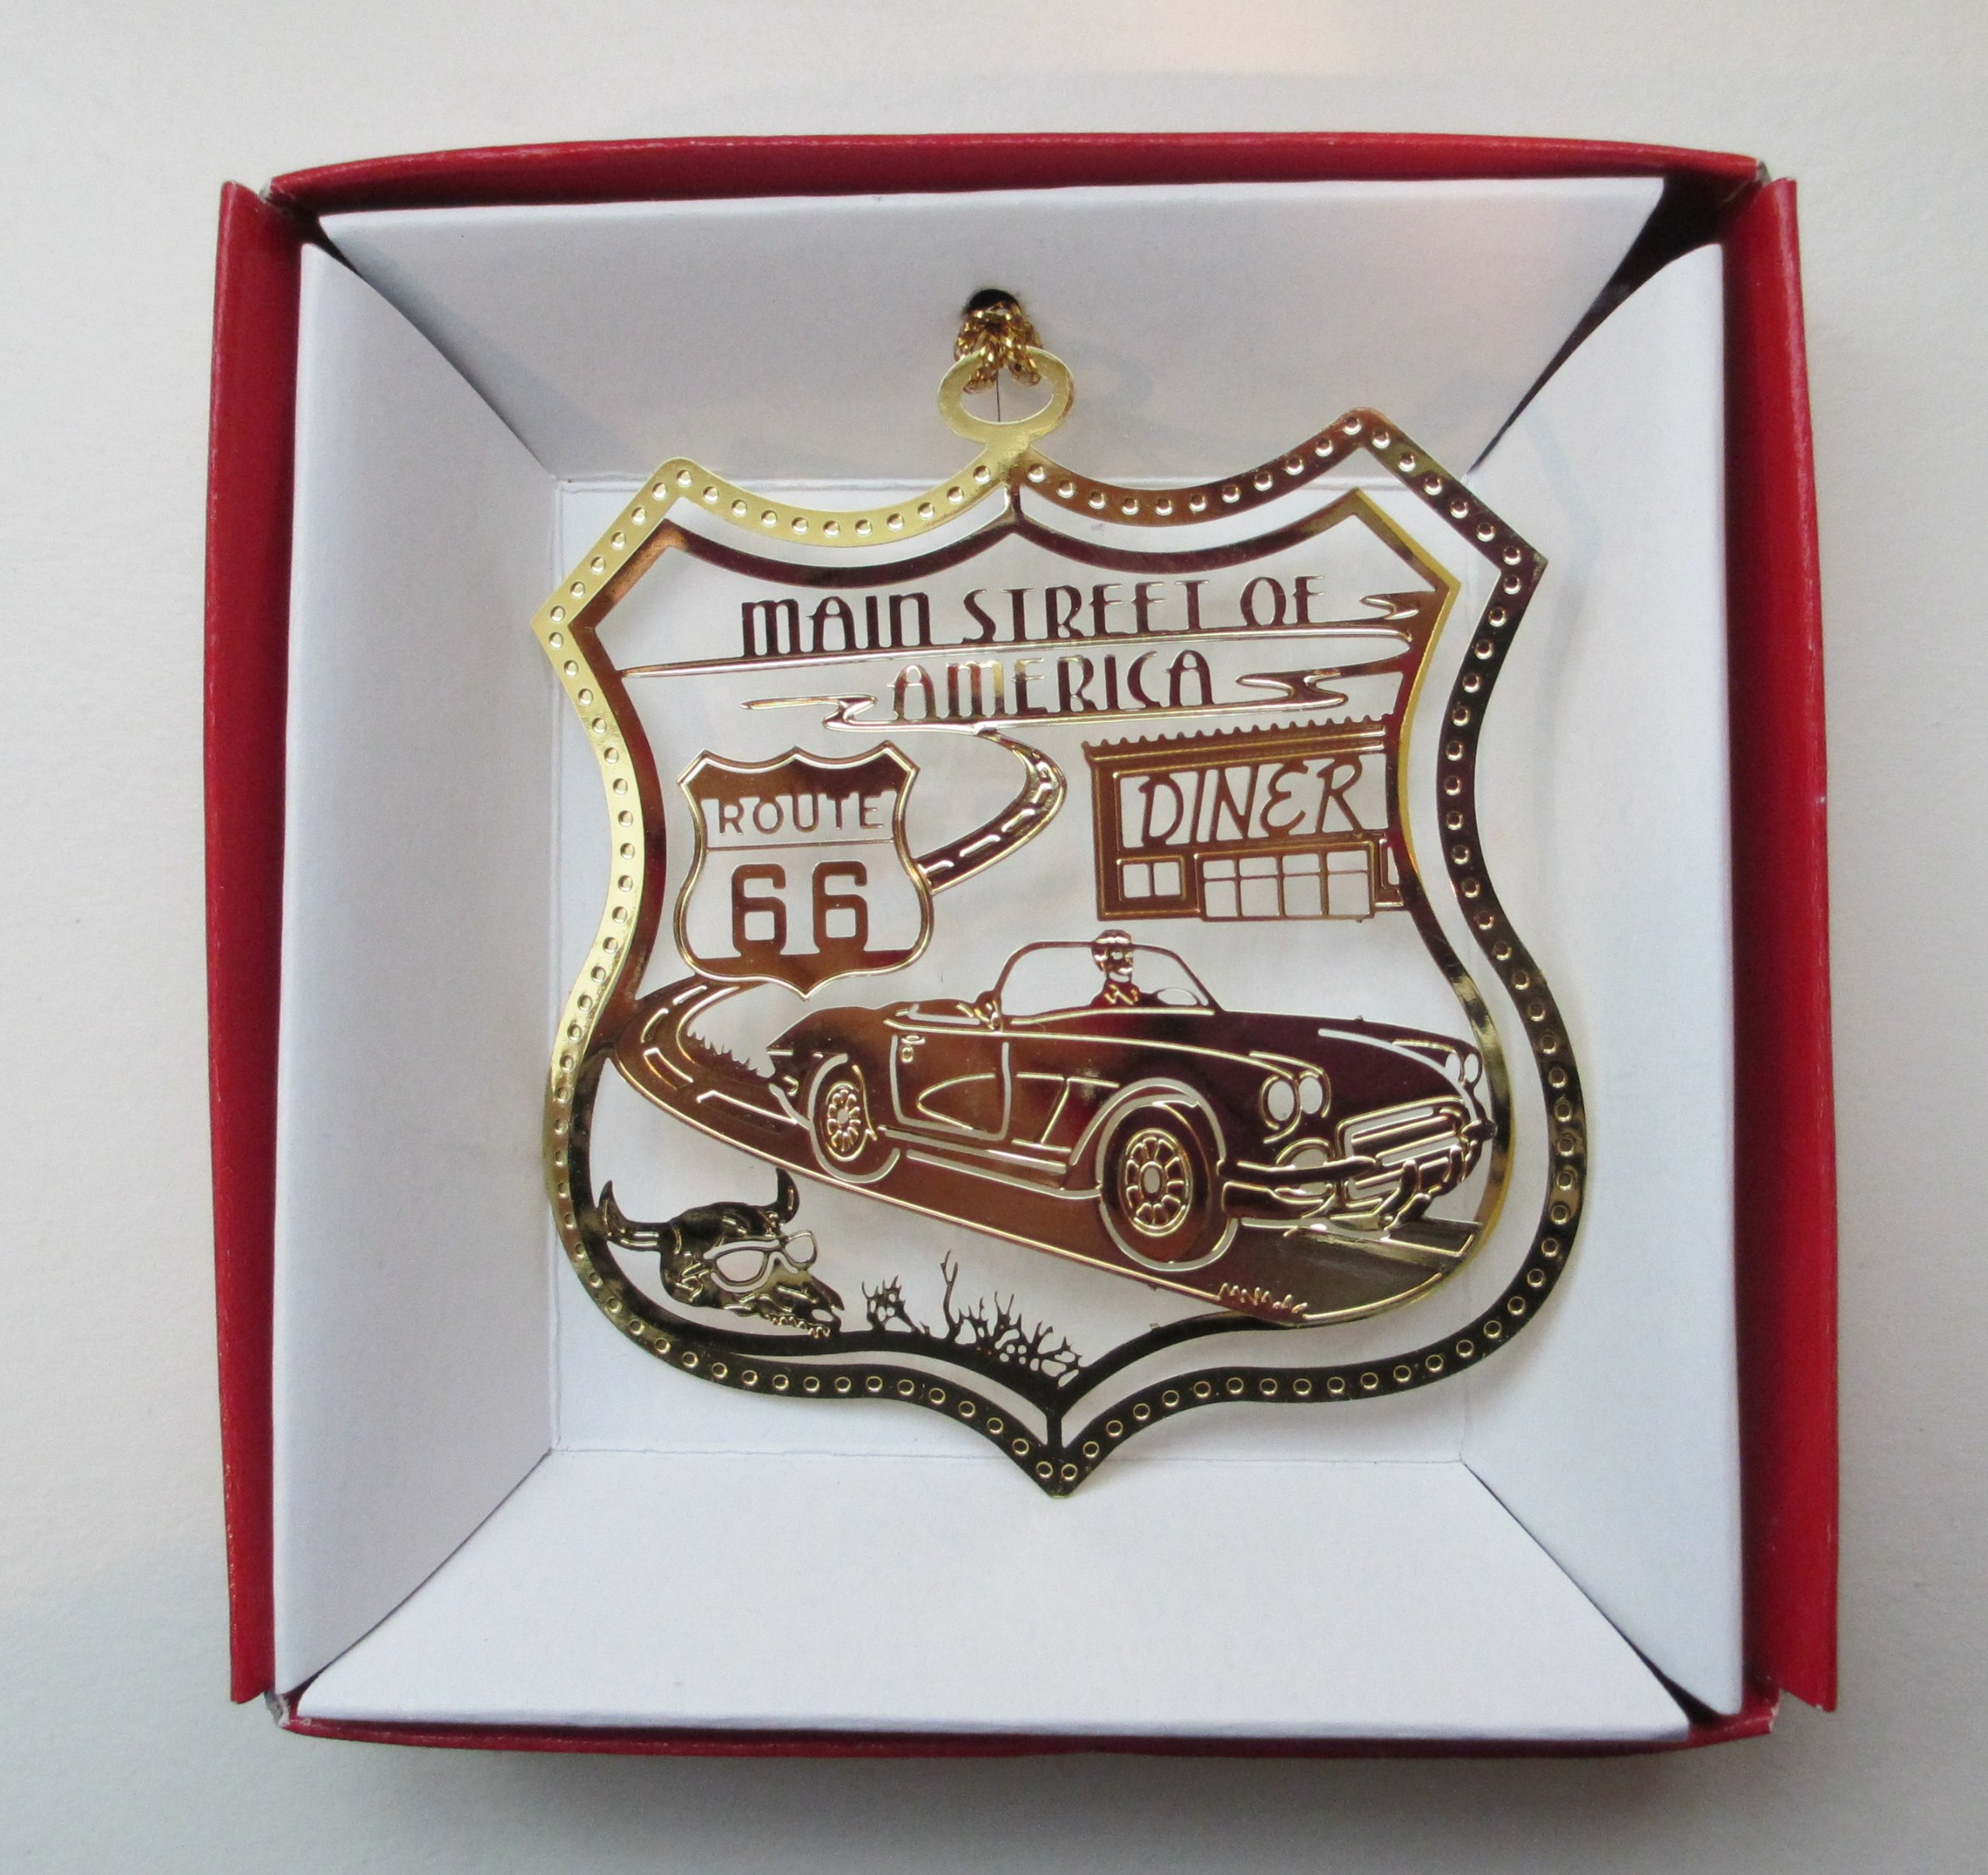 Route 66 Brass Christmas ORNAMENT Main Street of America